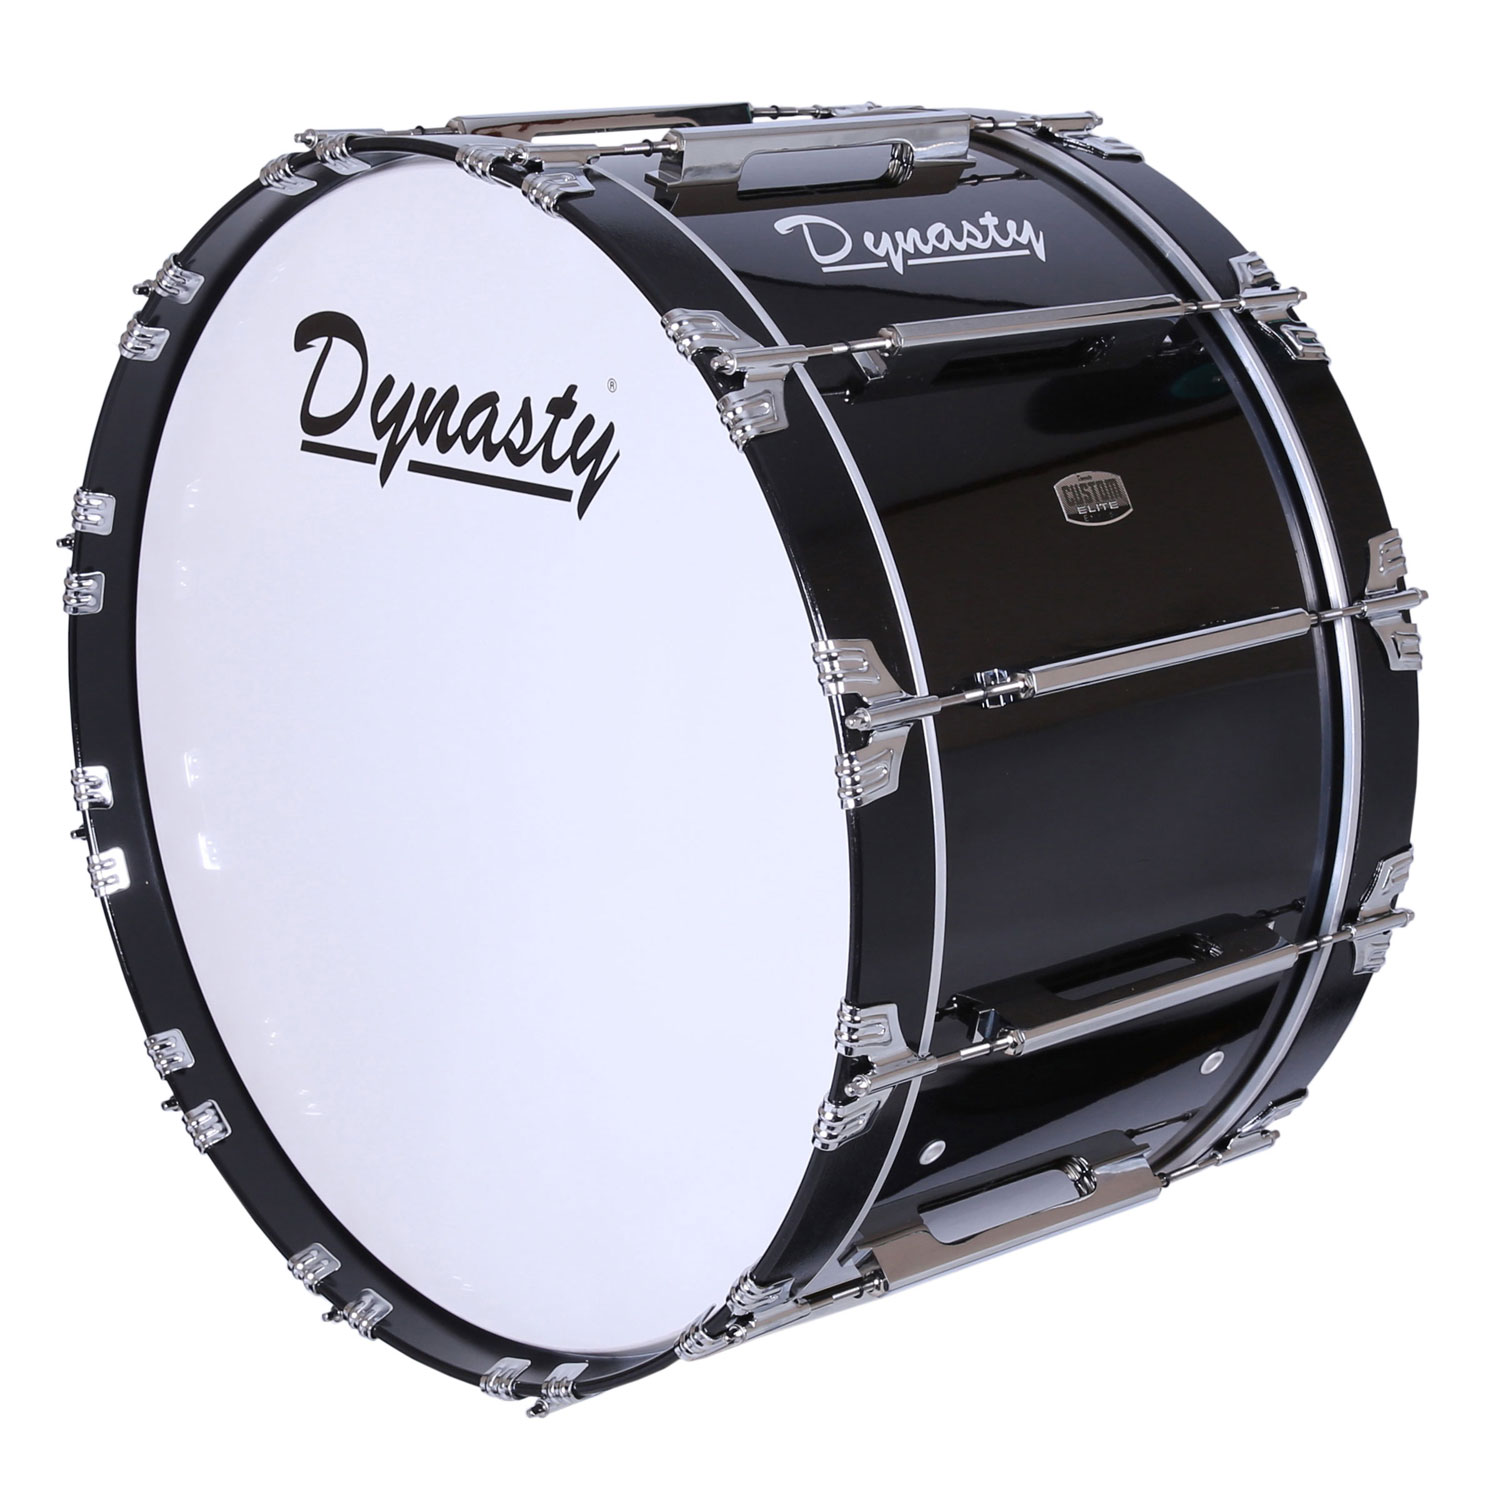 "Dynasty 16"" Custom Elite Marching Bass Drum in Black/Chrome"